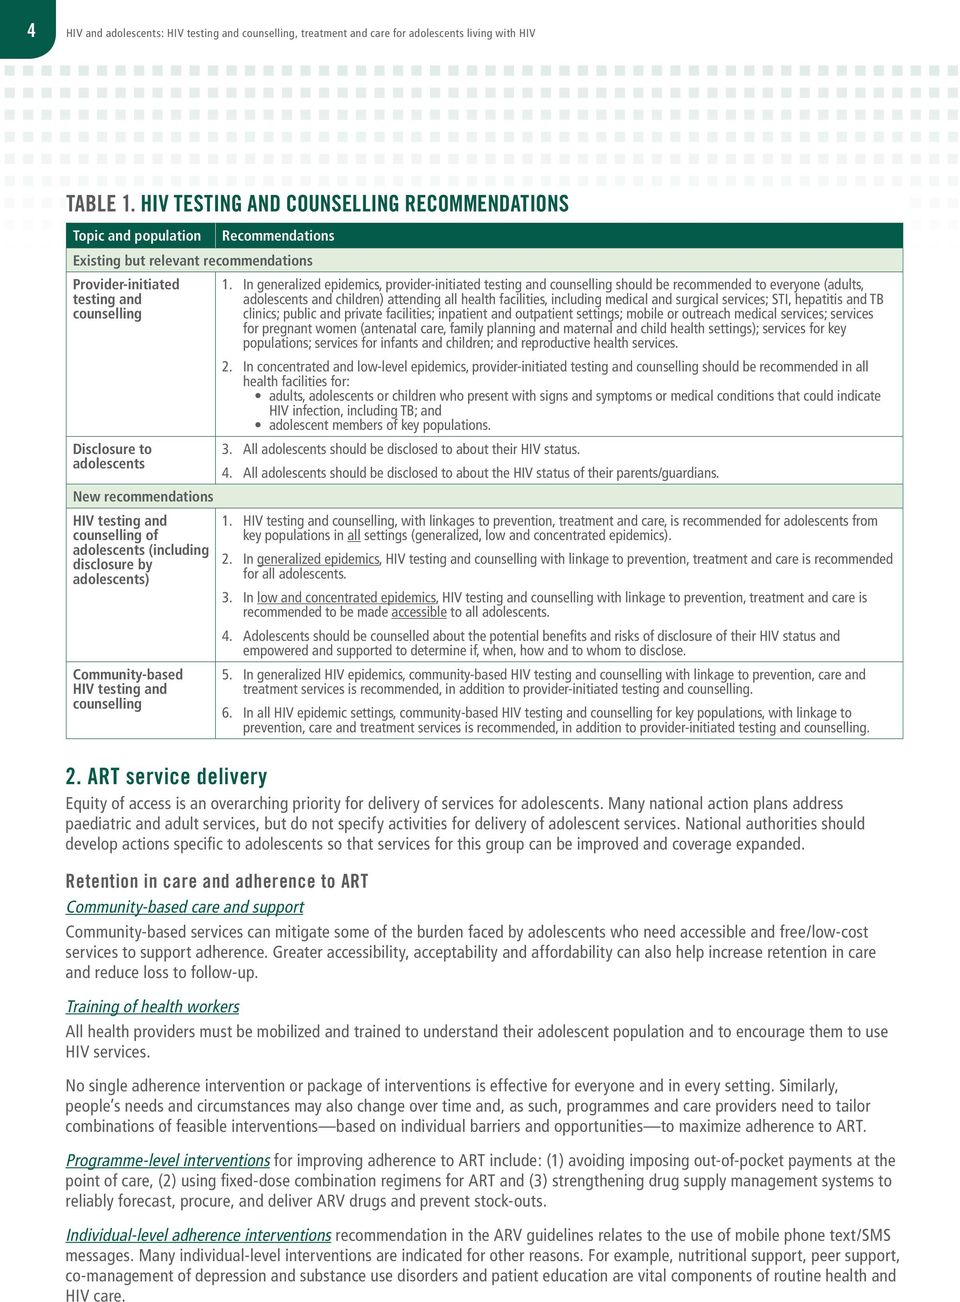 recommendations HIV testing and counselling of adolescents (including disclosure by adolescents) Community-based HIV testing and counselling 1.